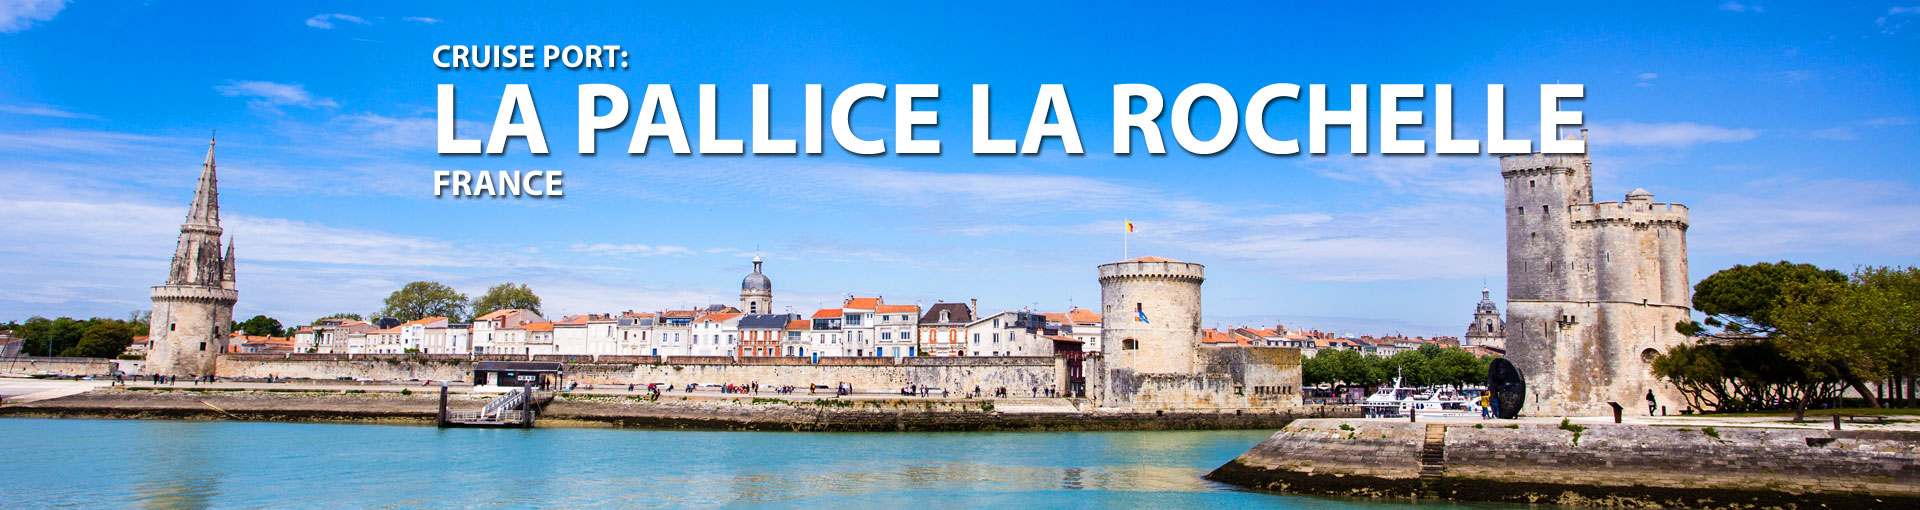 Cruises to La Pallice La Rochelle, France